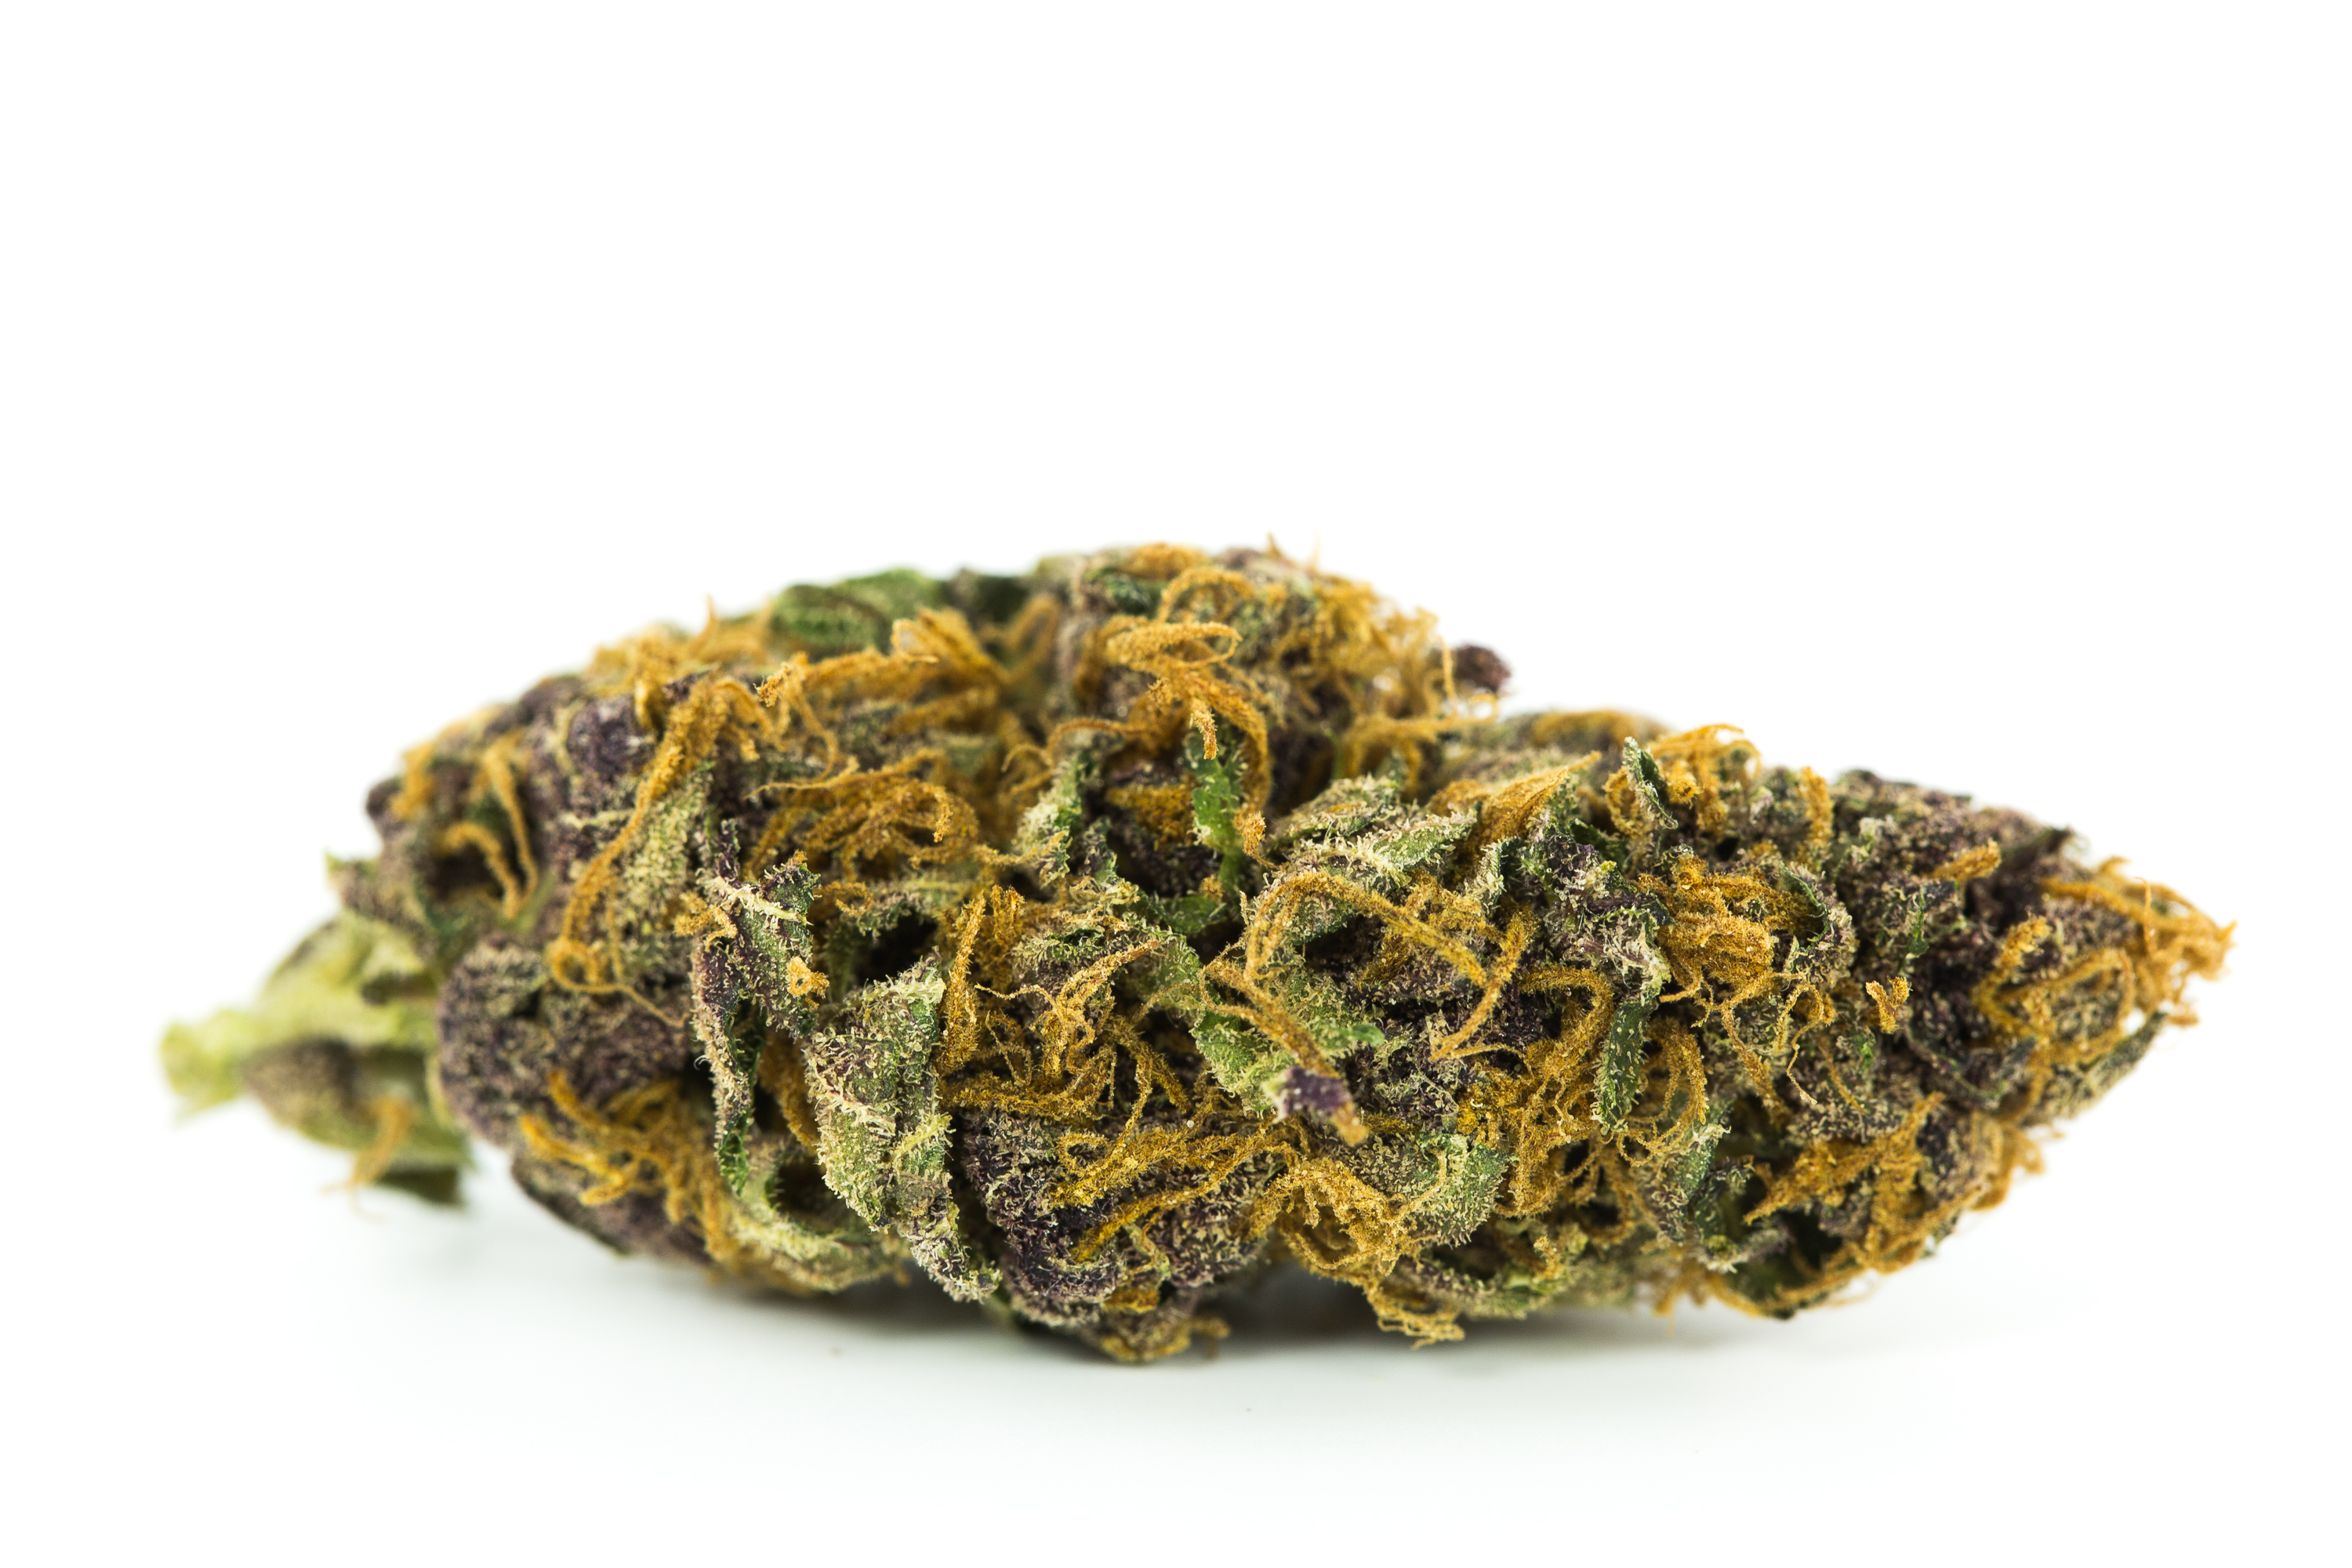 Purple Space Cookies Marijuana Strain Weed and Books: 5 Best Strains For Higher Learning